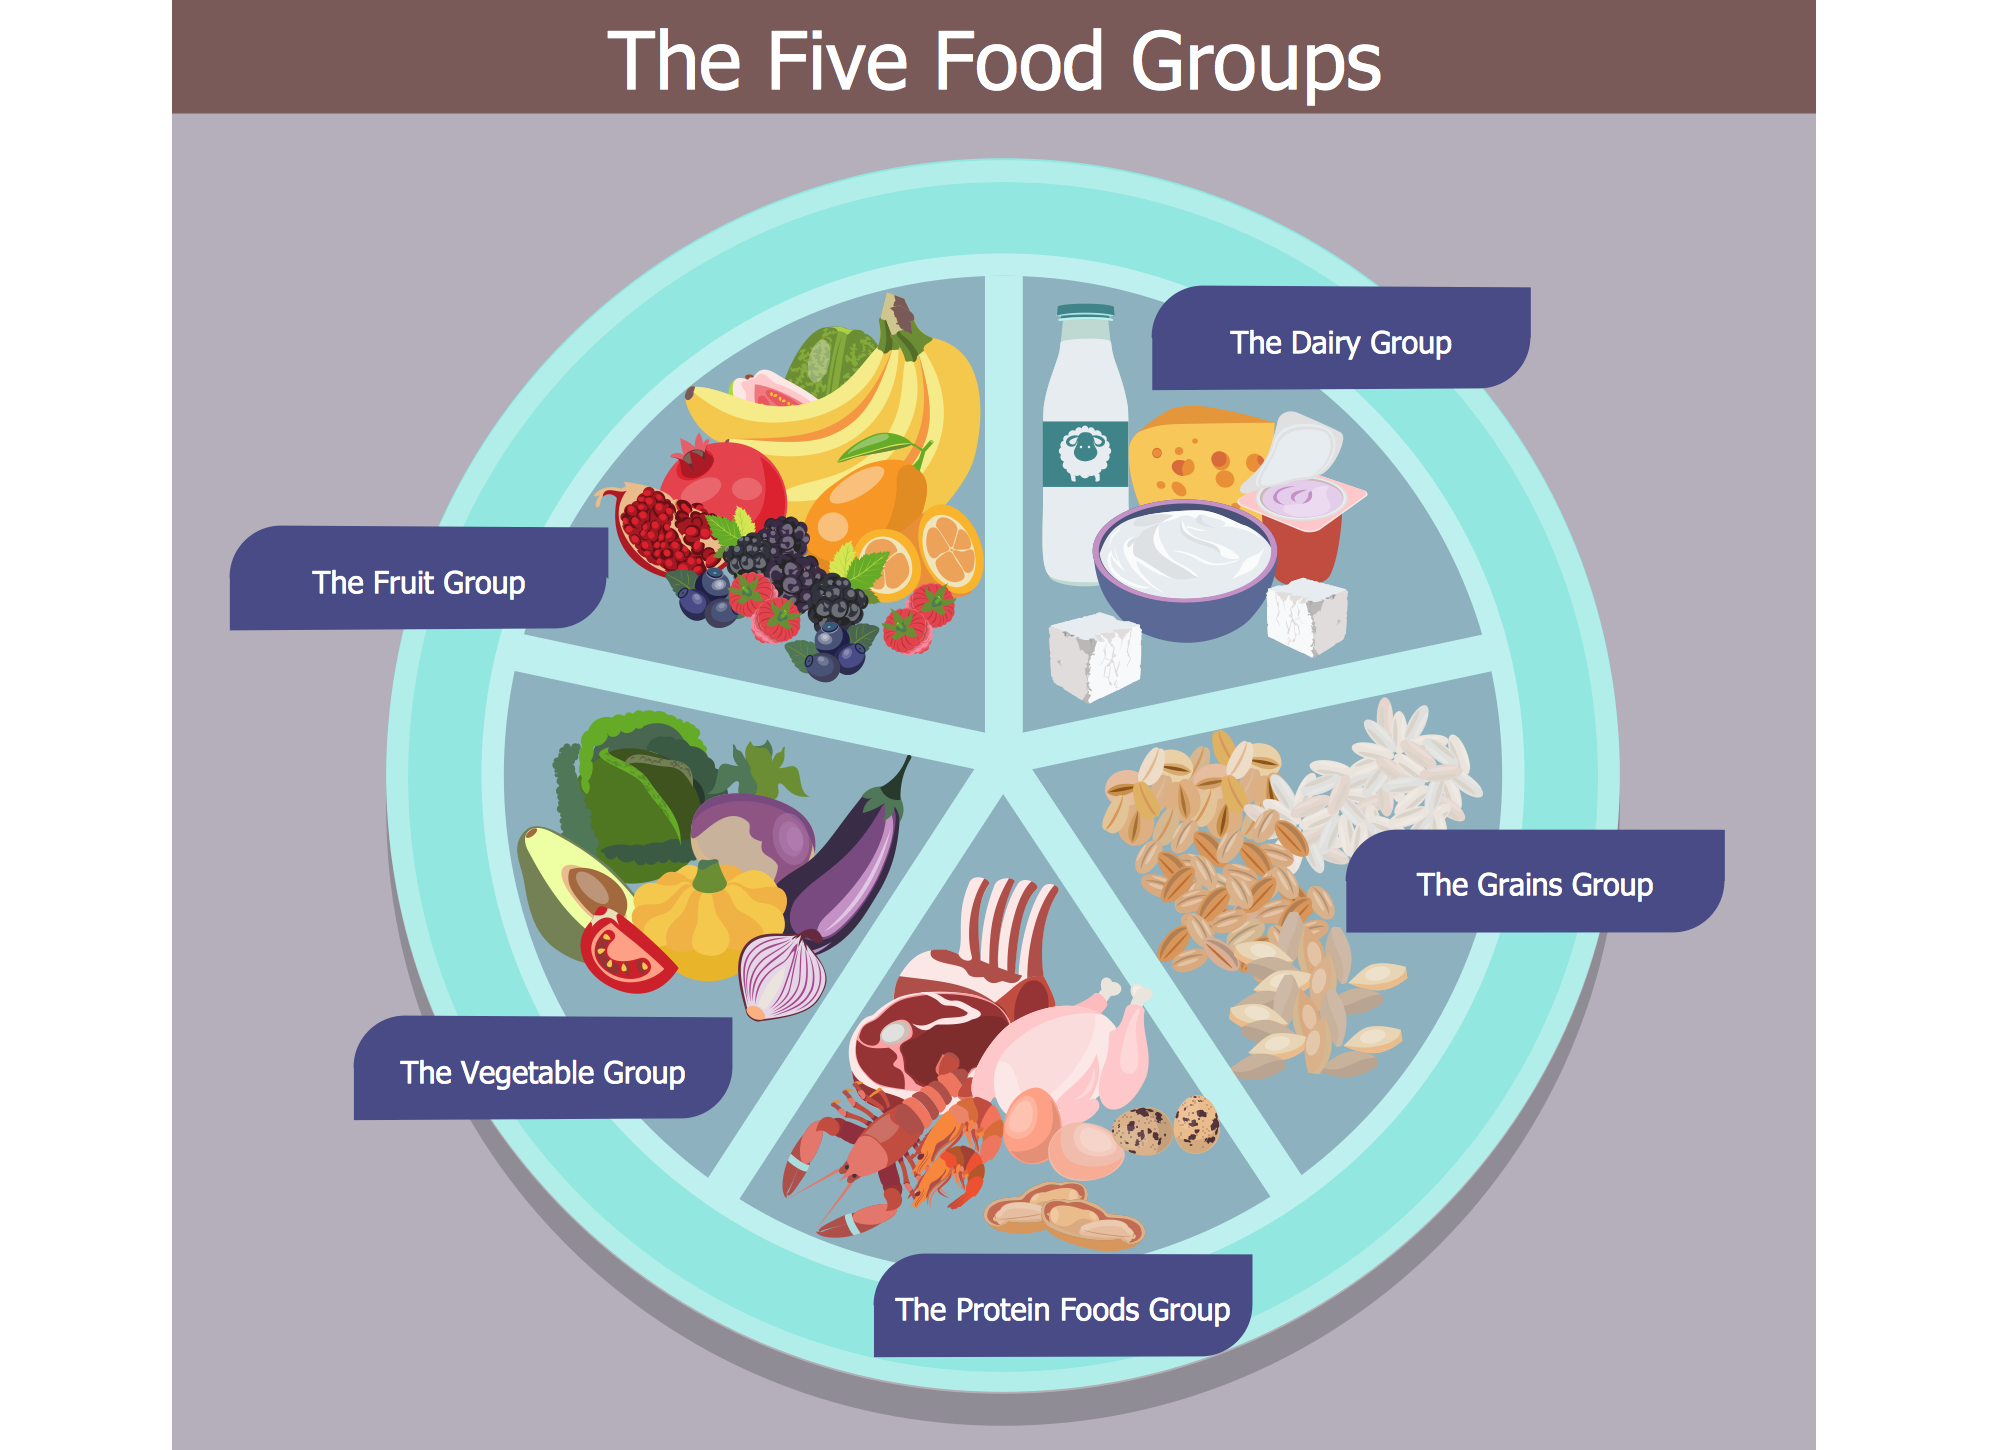 Health Food — The Five Food Groups